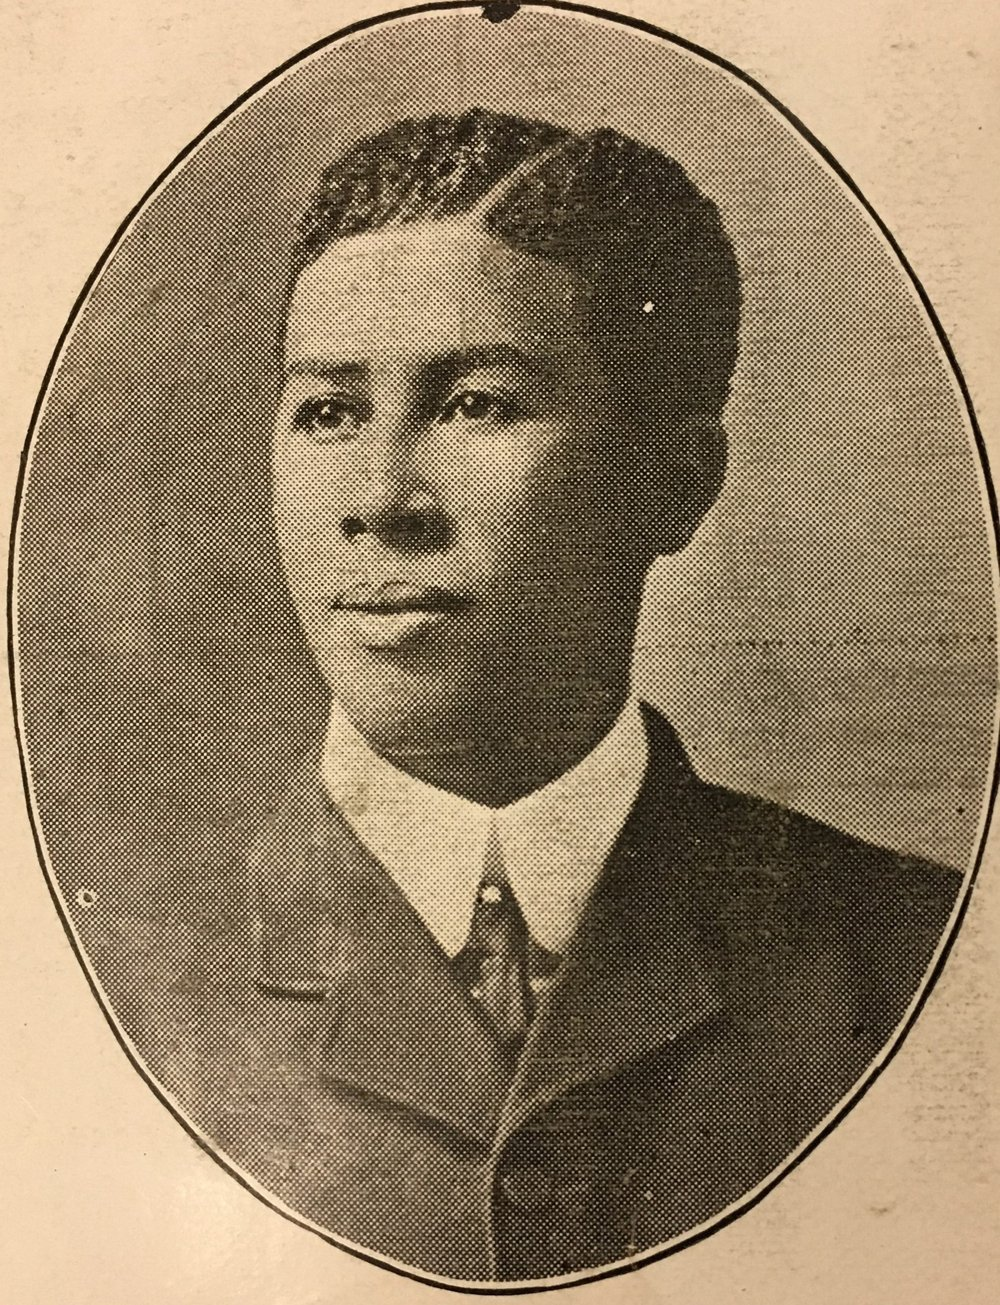 One of only two currently-known teachers at the Ceredo School was Ezra Mullen, who taught around 1915. Image from the 1915 Ceredo-Kenova High School yearbook; courtesy of the Ceredo Historical Society Museum.